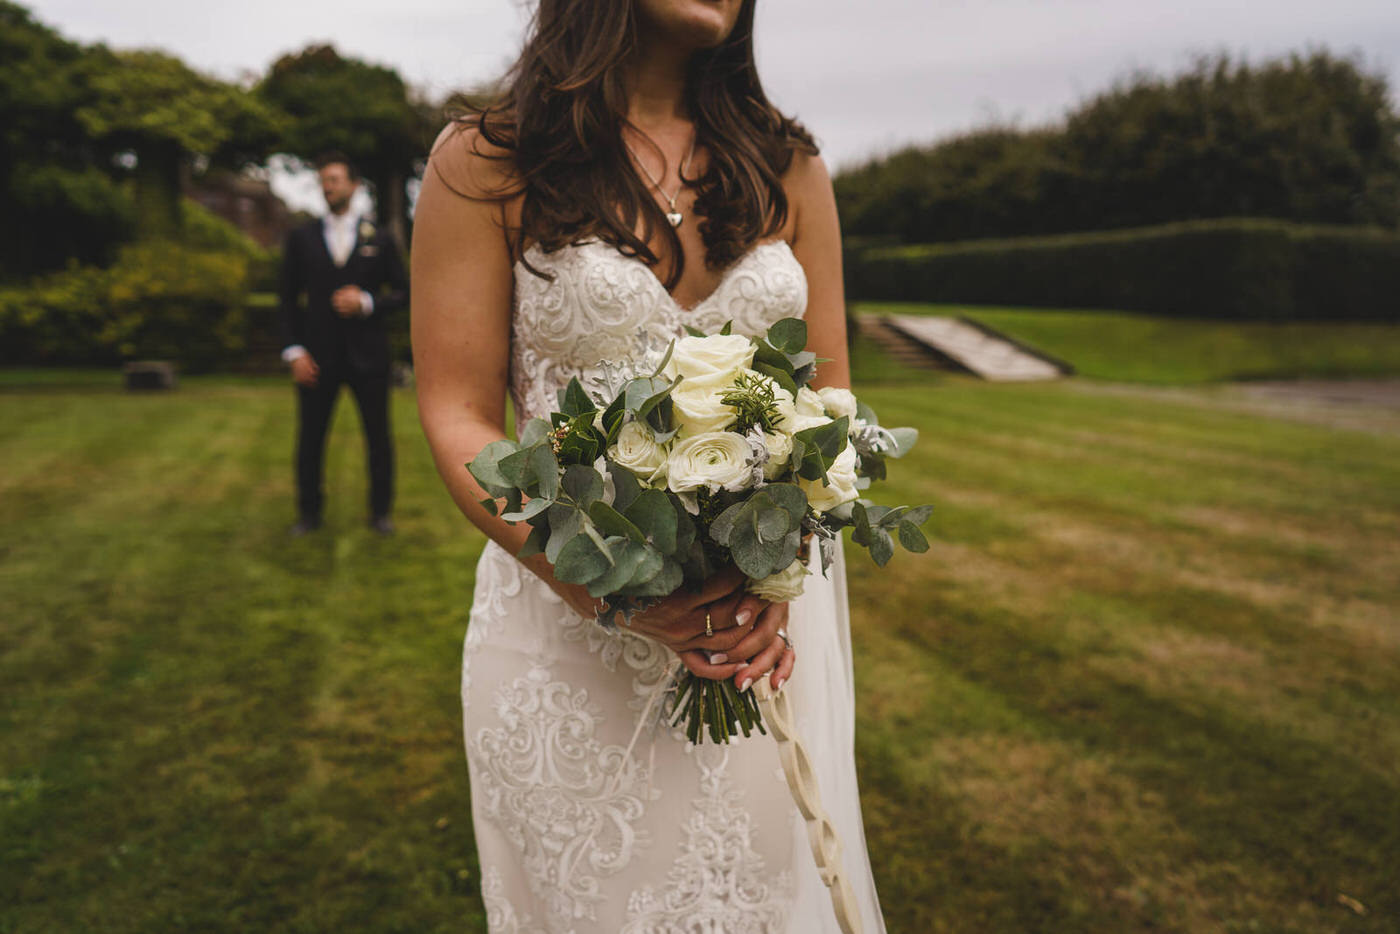 the bride holding her beautiful bouquet as the groom looks on